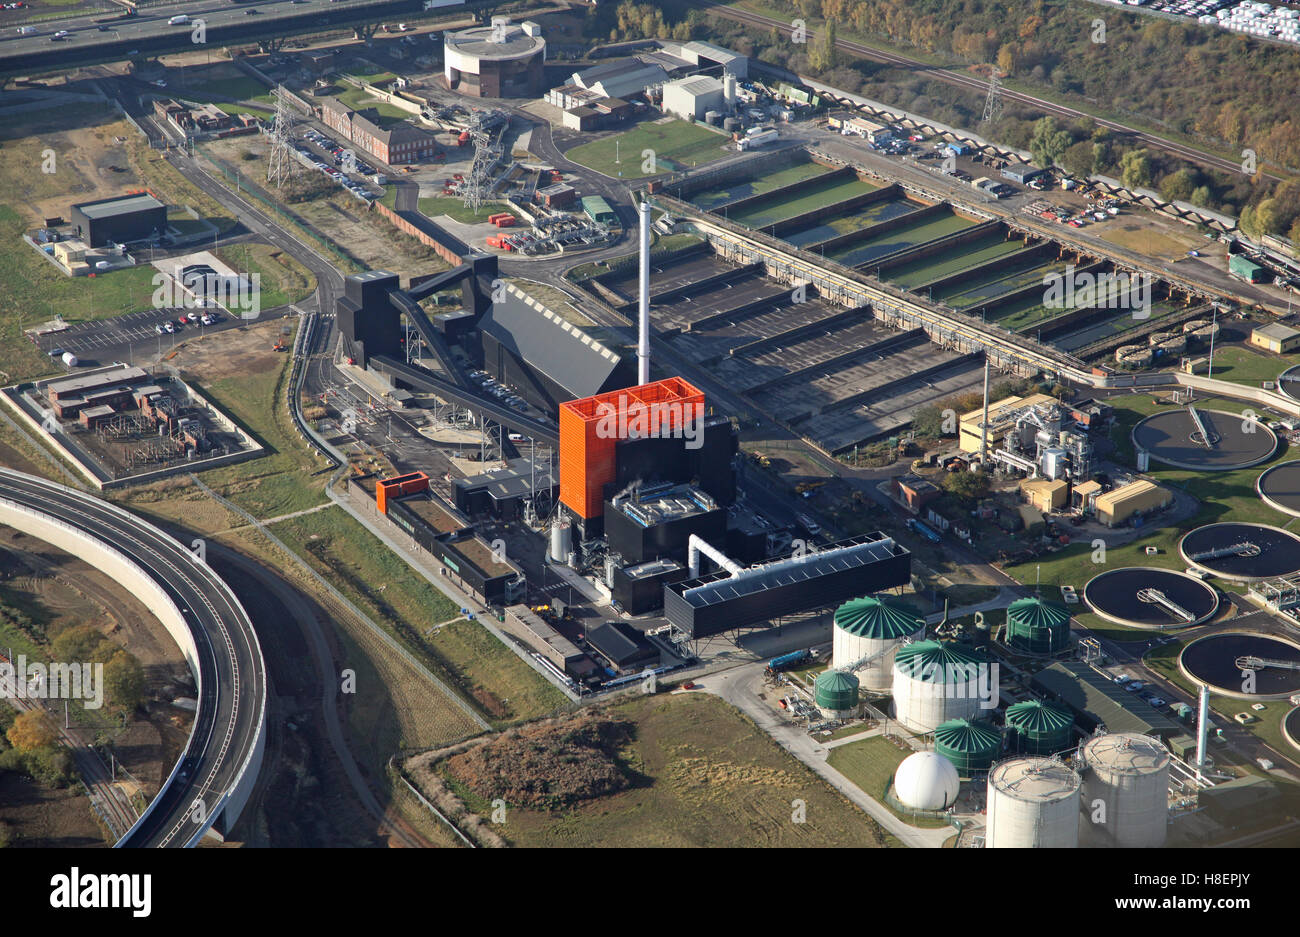 aerial view of the Blackburn Meadows Renewable Energy Plant run by eon at Rotherham, South Yorkshire, UK - Stock Image